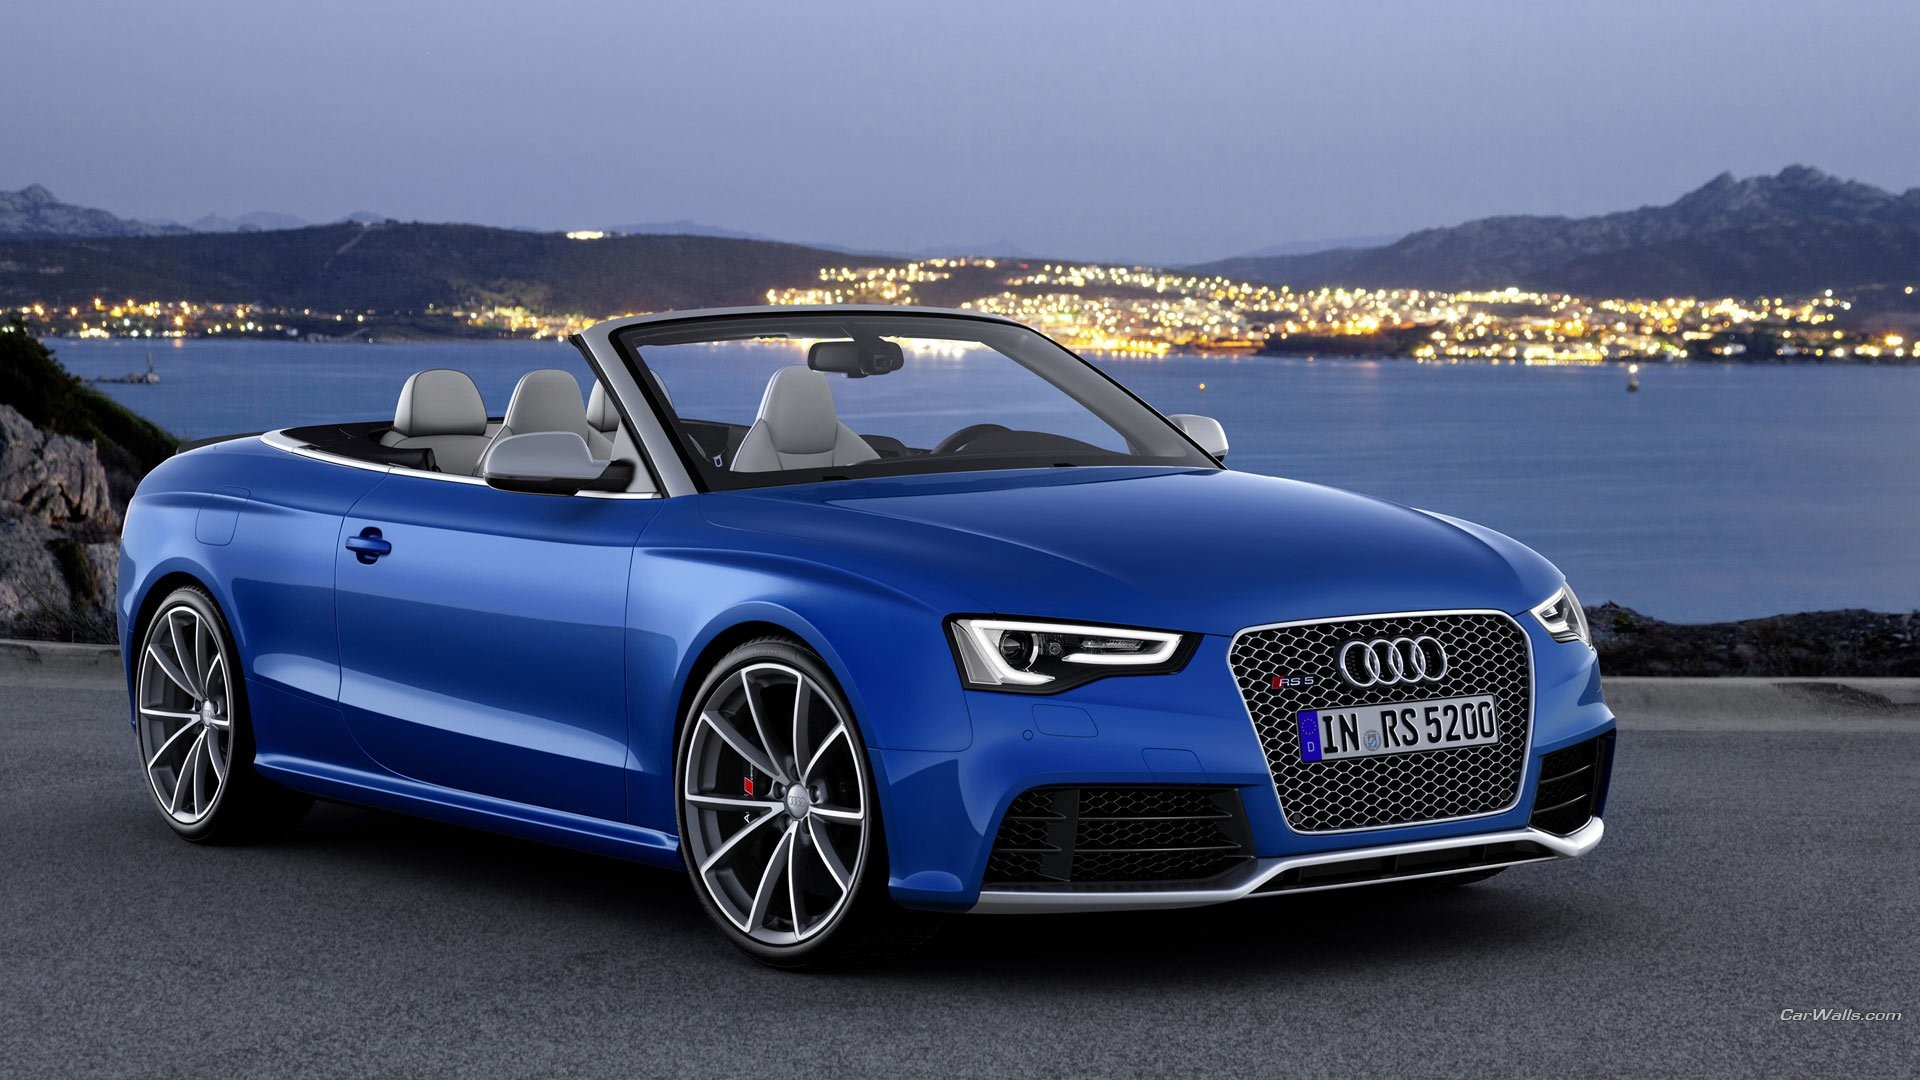 1920x1080 1920x1080 Preview Wallpaper Audi, Rs5, Tuning 1920x1080